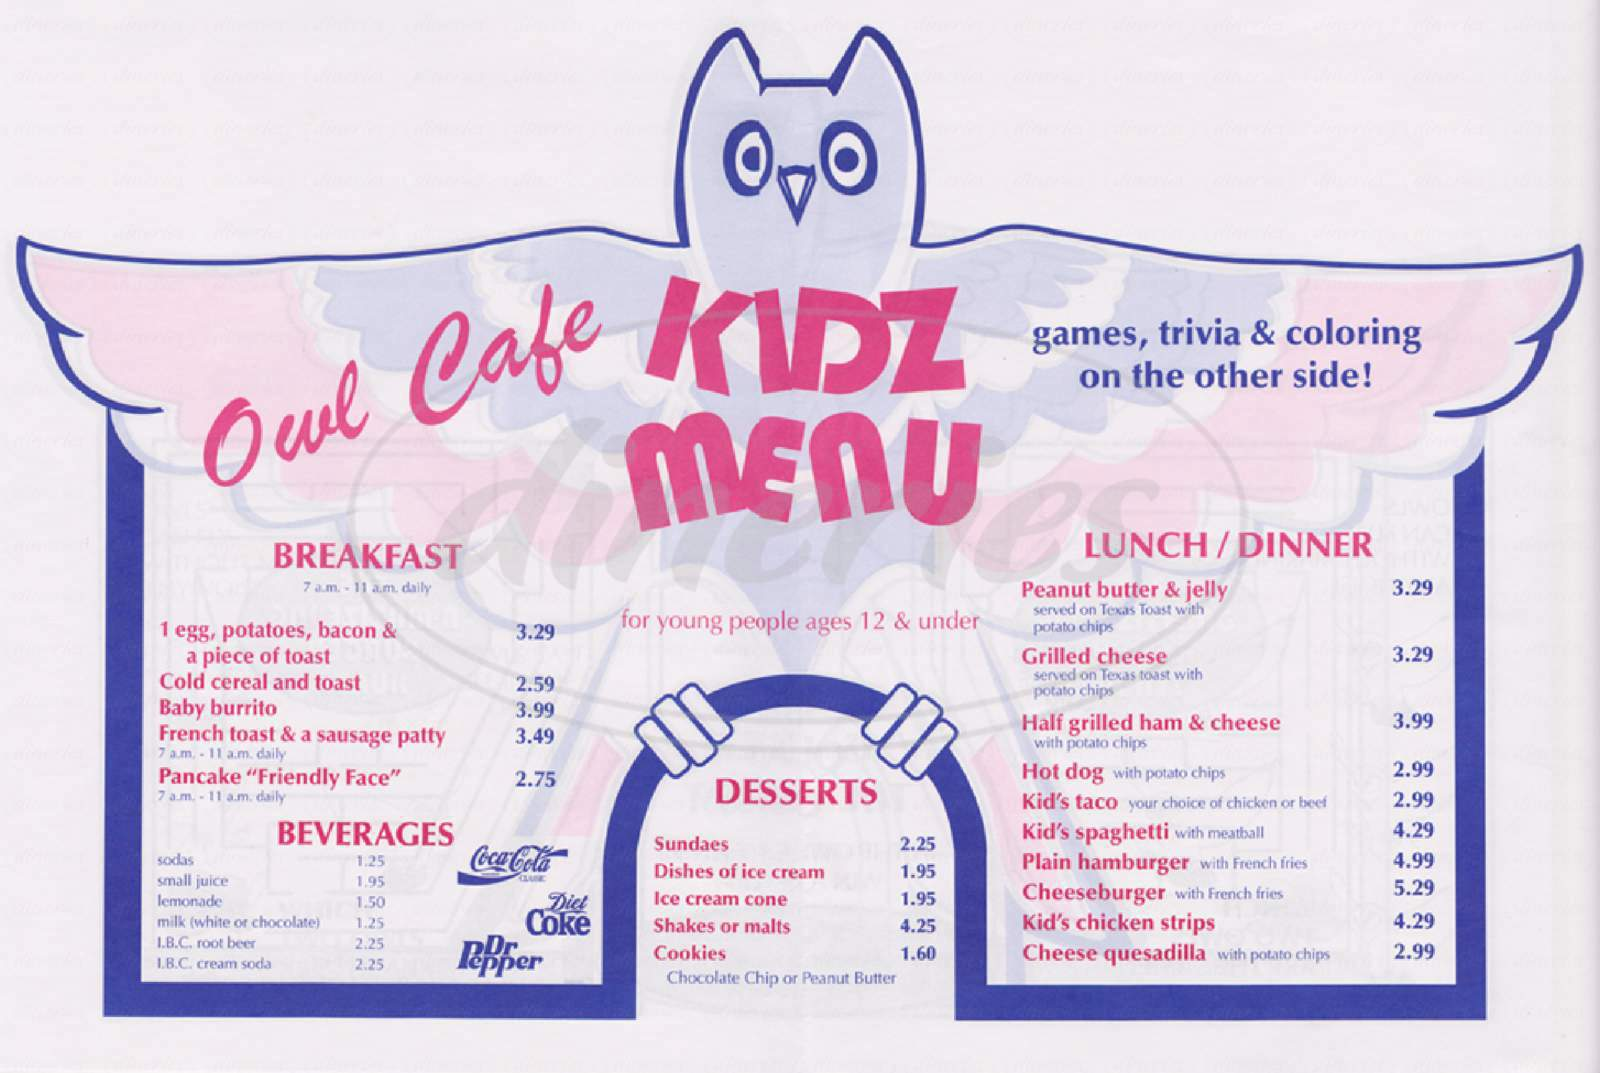 menu for The Owl Cafe